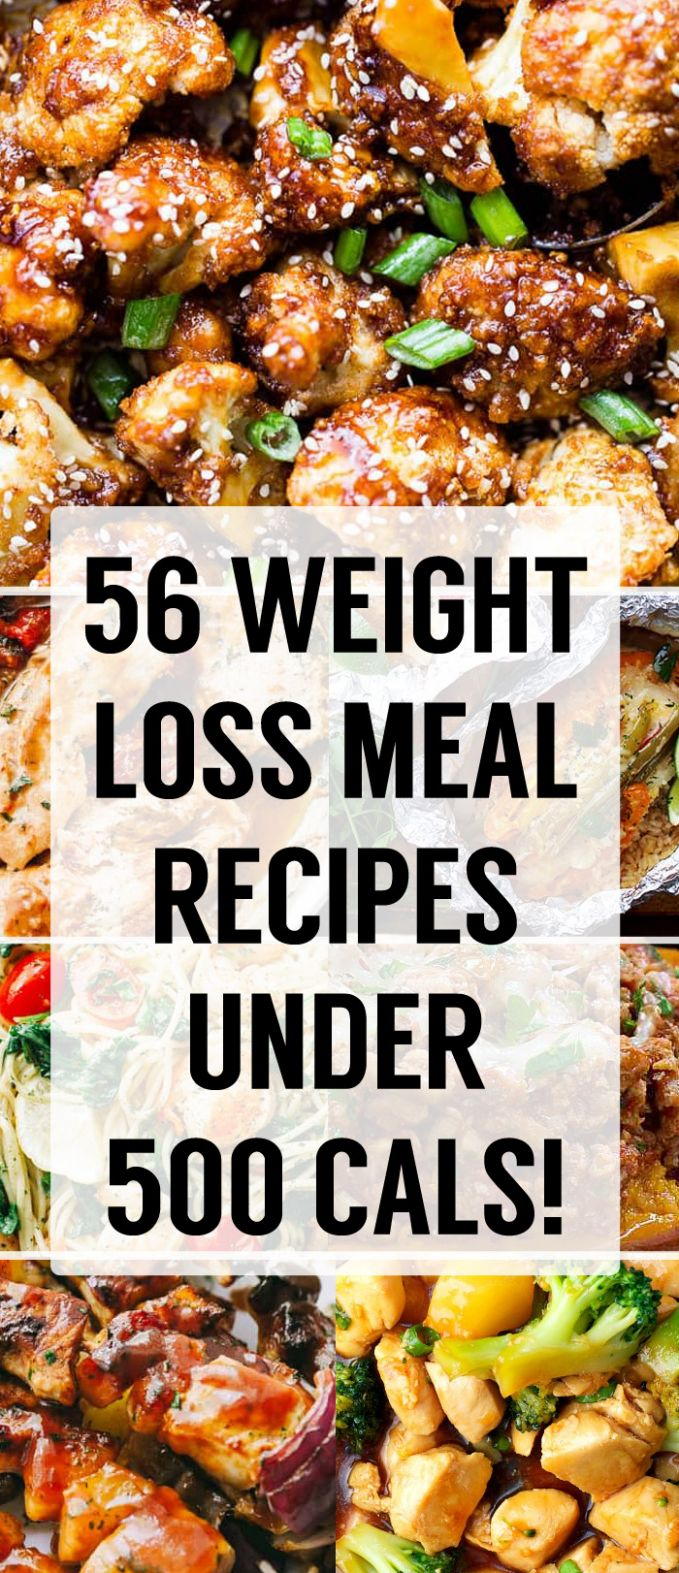 10 Unbelievably Delicious Weight Loss Dinner Recipes Under 10 ...